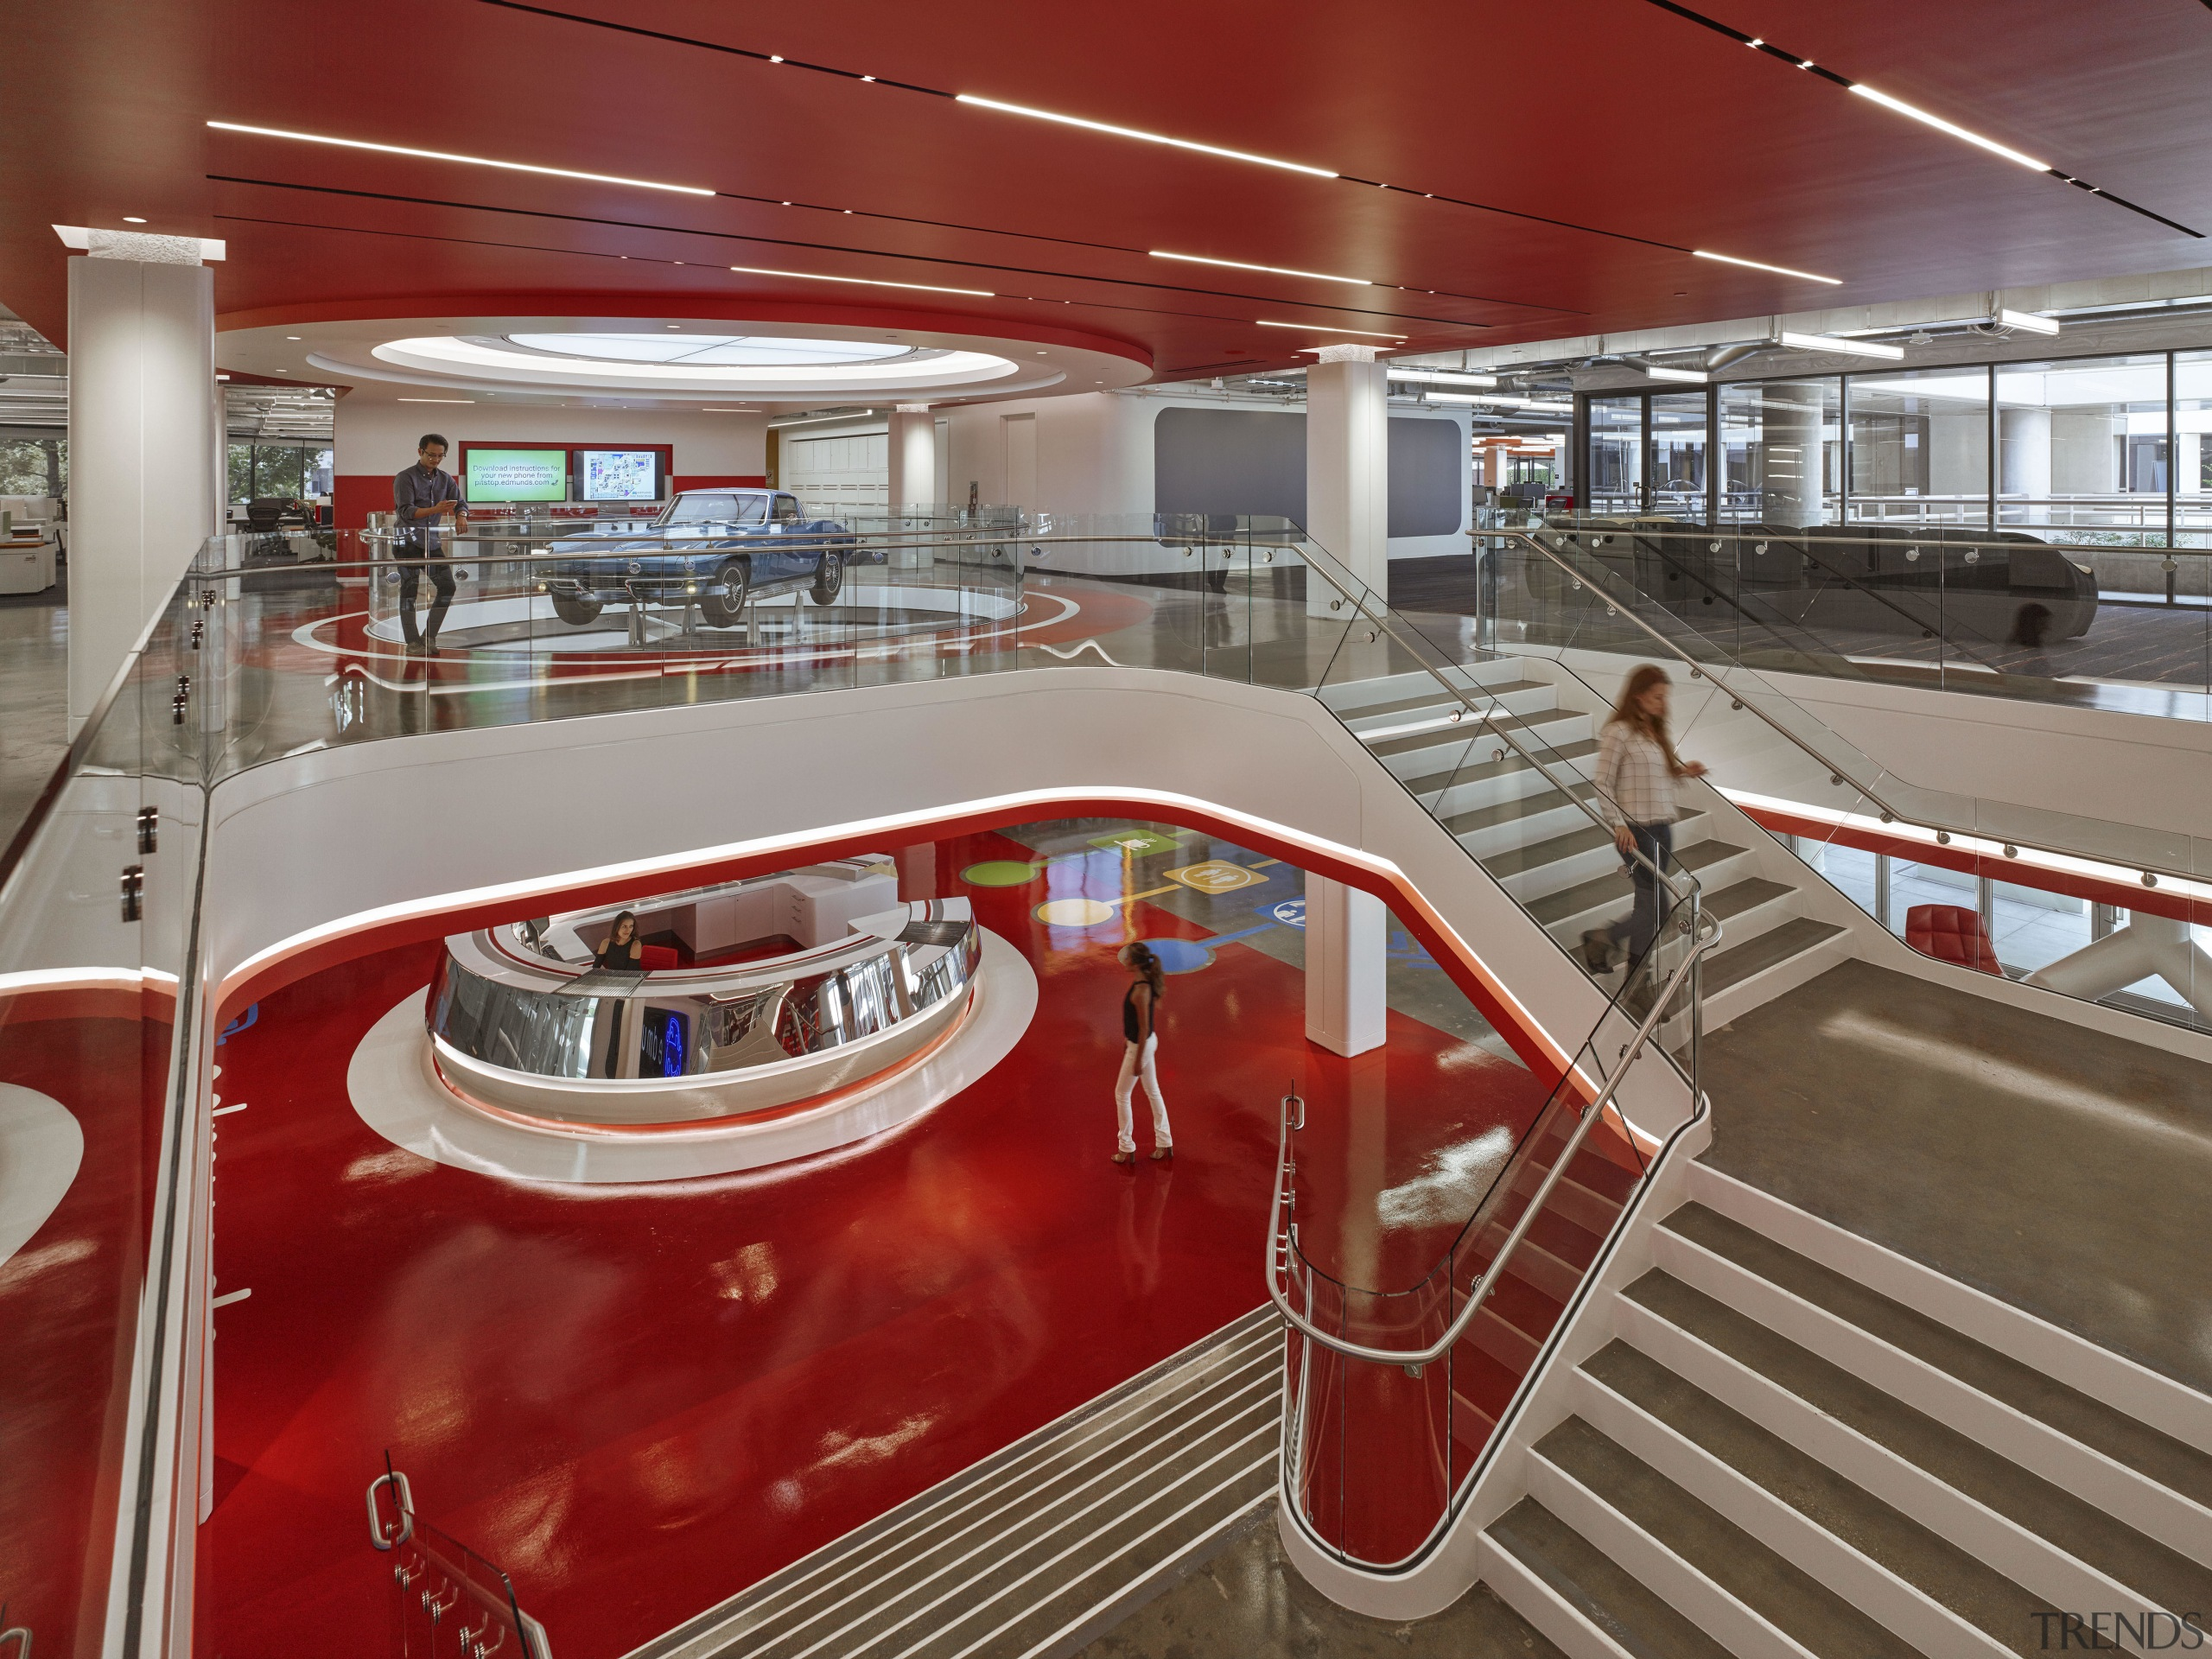 In keeping with the nature of the business interior design, leisure centre, red, gray